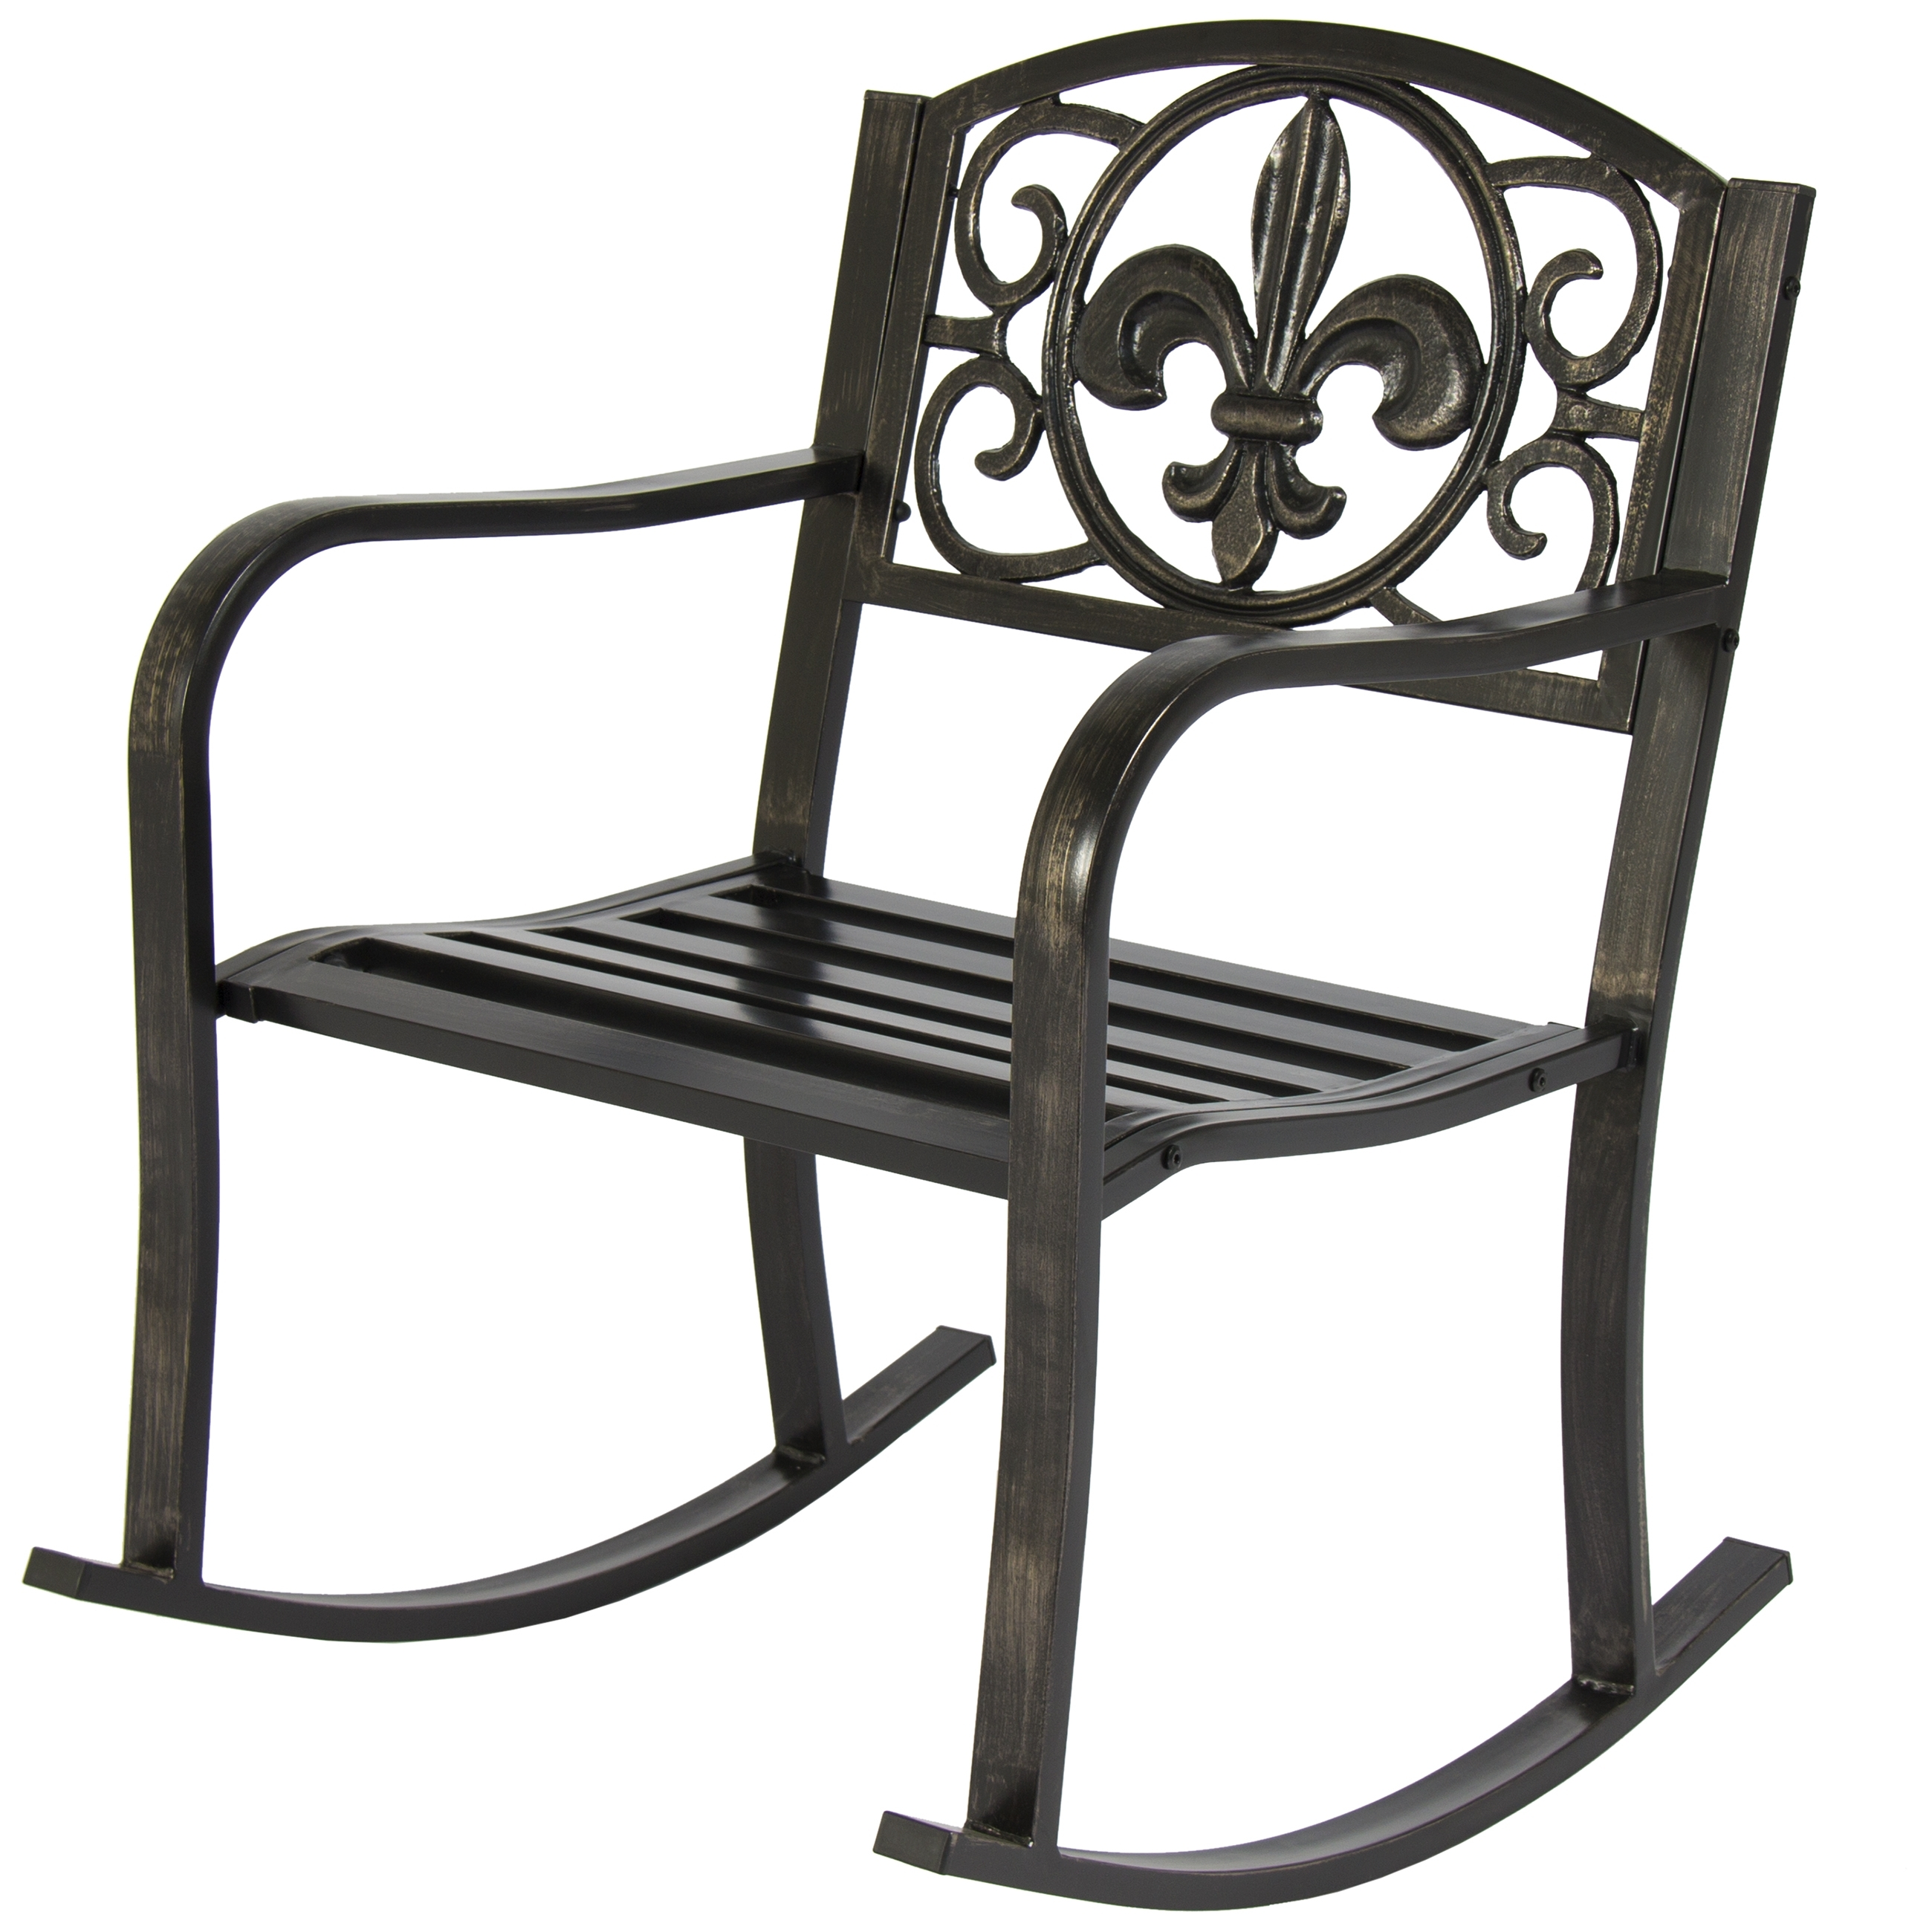 Most Recent Best Choice Products Metal Rocking Chair Seat For Patio, Porch, Deck With Regard To Walmart Rocking Chairs (View 9 of 15)